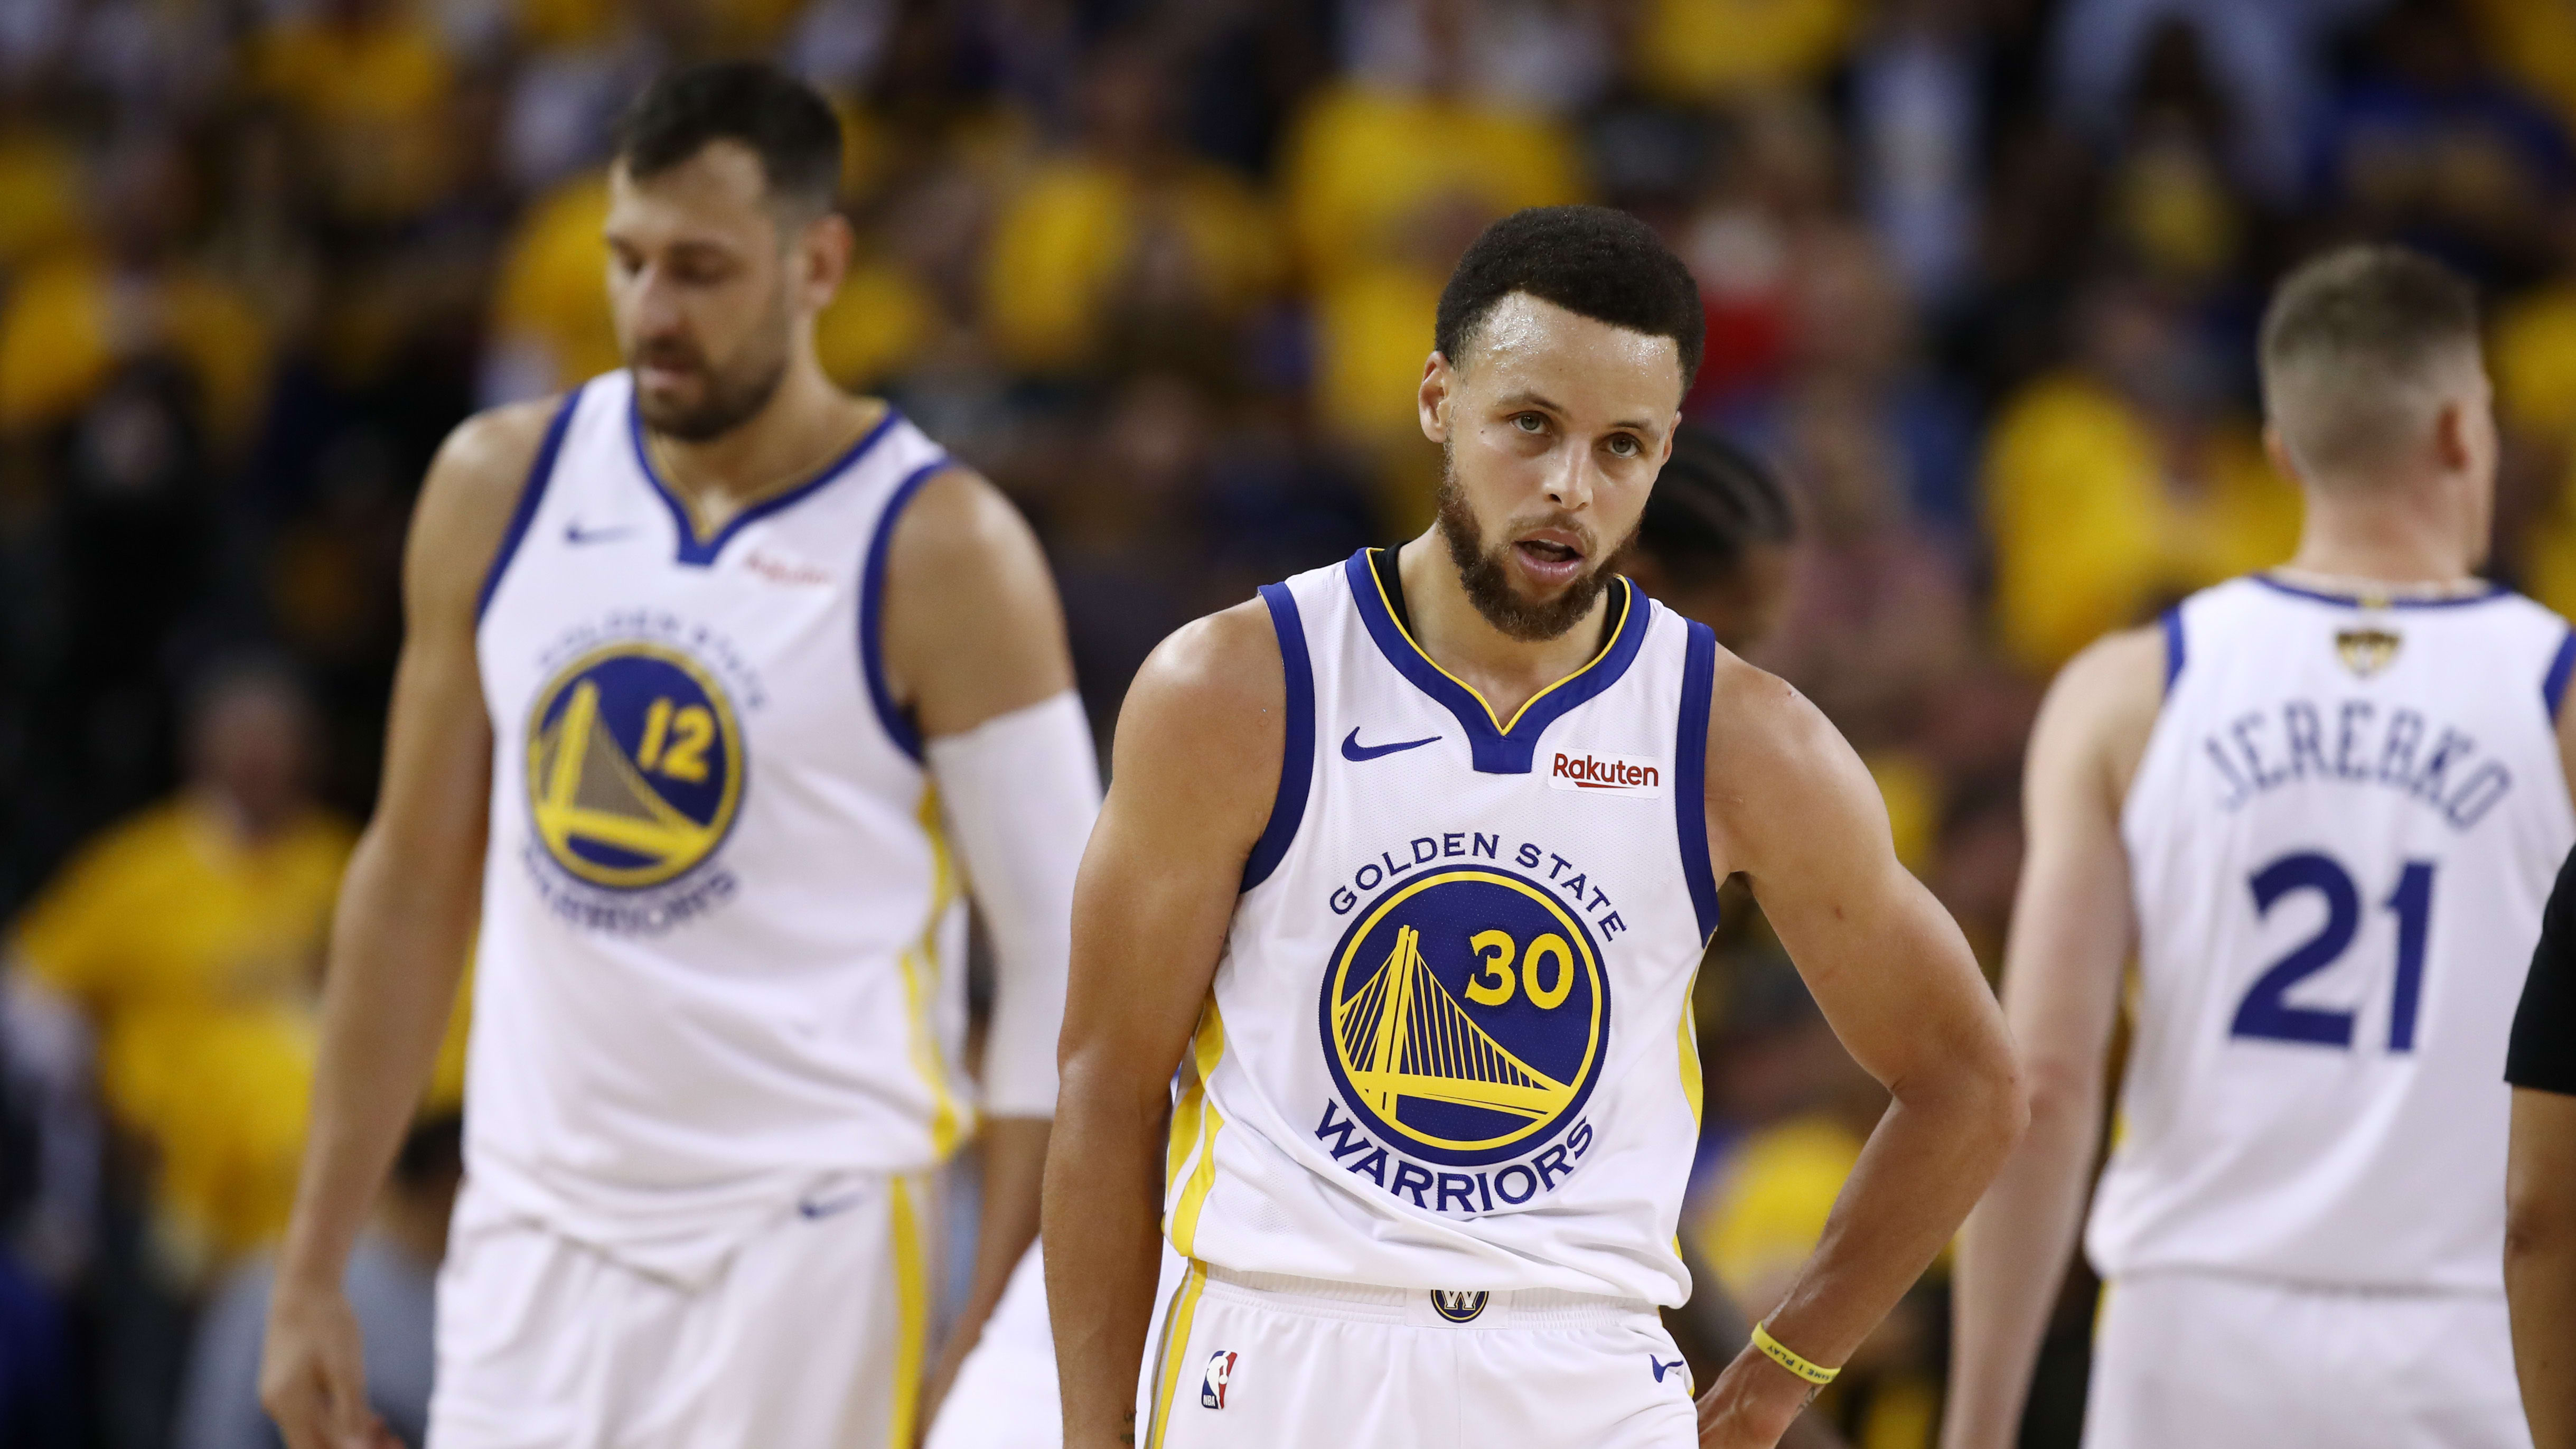 OAKLAND, CALIFORNIA - JUNE 05:  Stephen Curry #30 of the Golden State Warriors reacts late in the game against the Toronto Raptors during Game Three of the 2019 NBA Finals at ORACLE Arena on June 05, 2019 in Oakland, California. NOTE TO USER: User expressly acknowledges and agrees that, by downloading and or using this photograph, User is consenting to the terms and conditions of the Getty Images License Agreement. (Photo by Ezra Shaw/Getty Images)